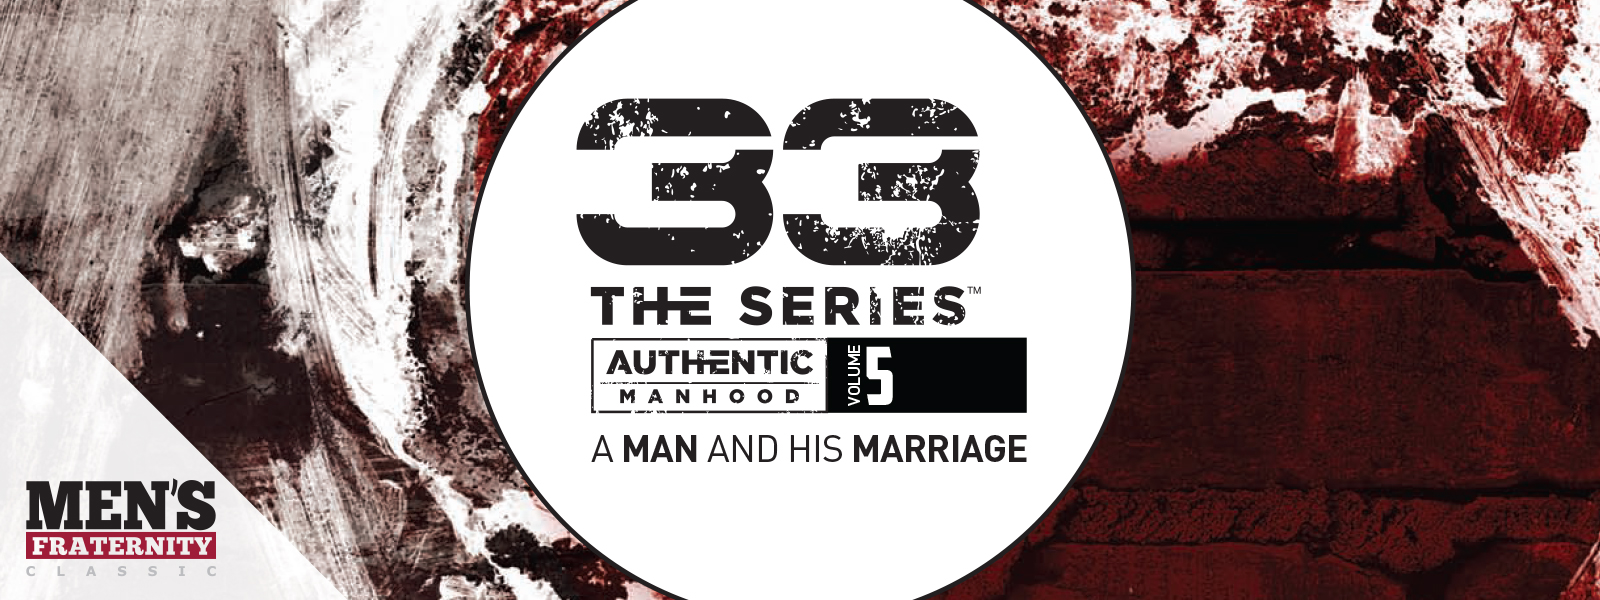 33 the series